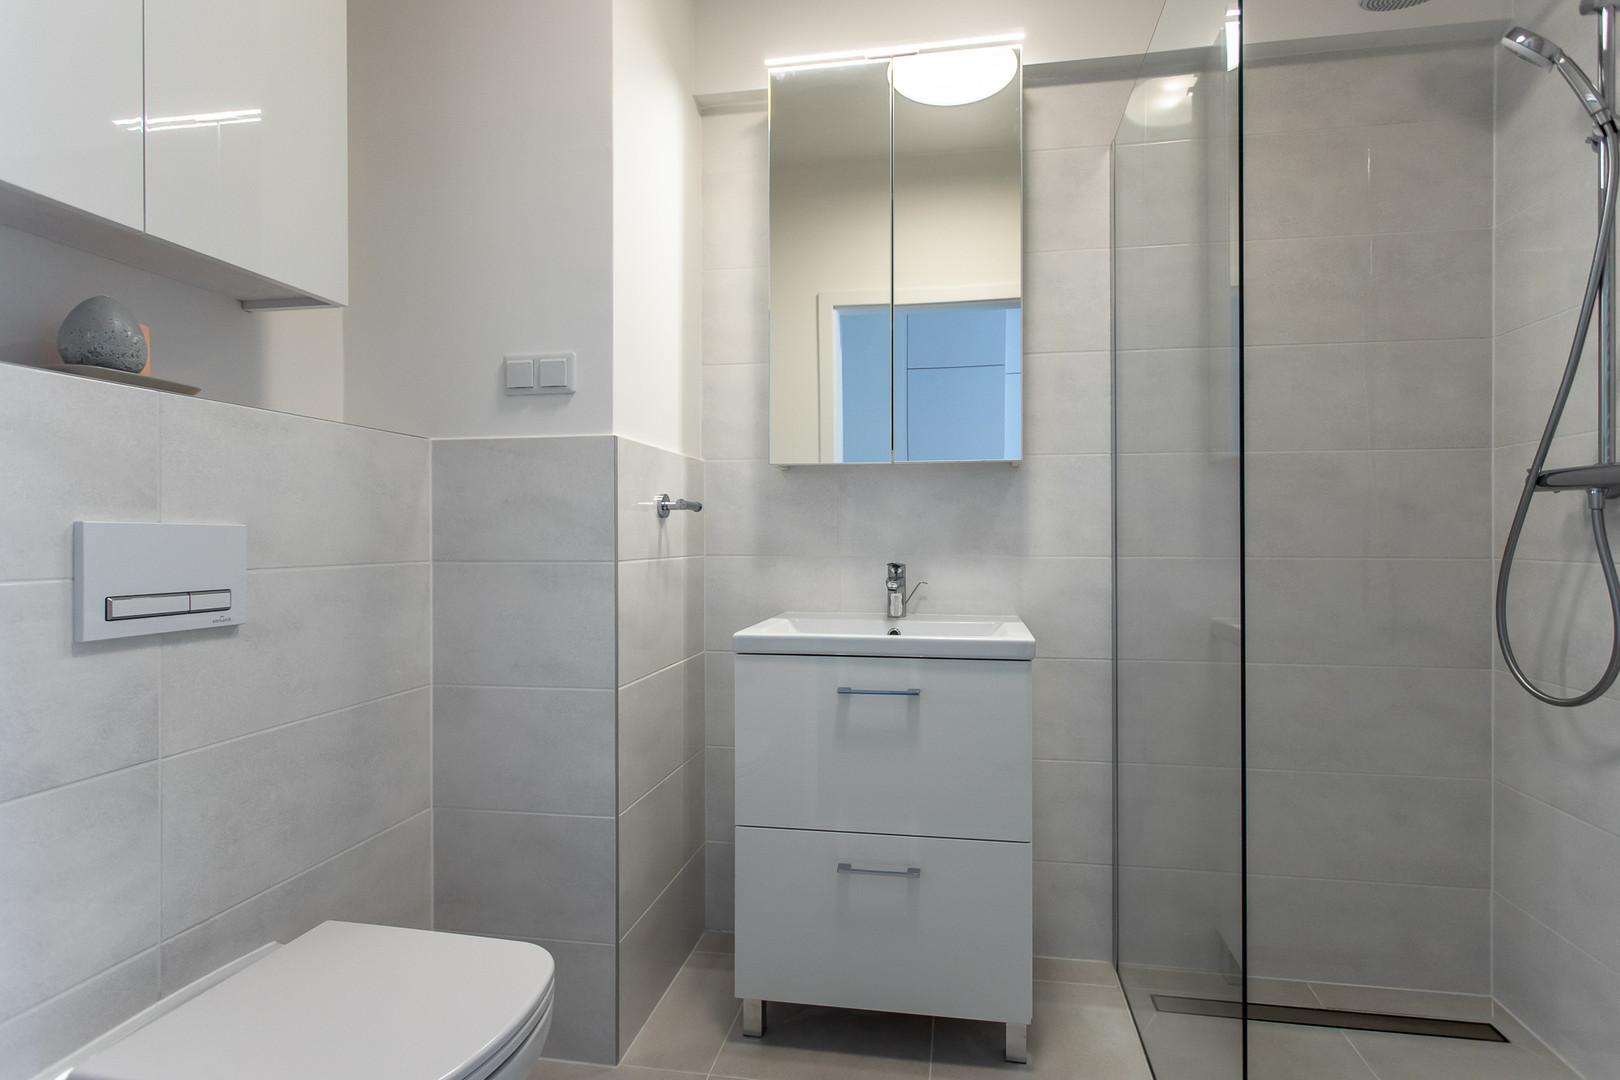 Wrasaw Wola Office Apartments for rent_3